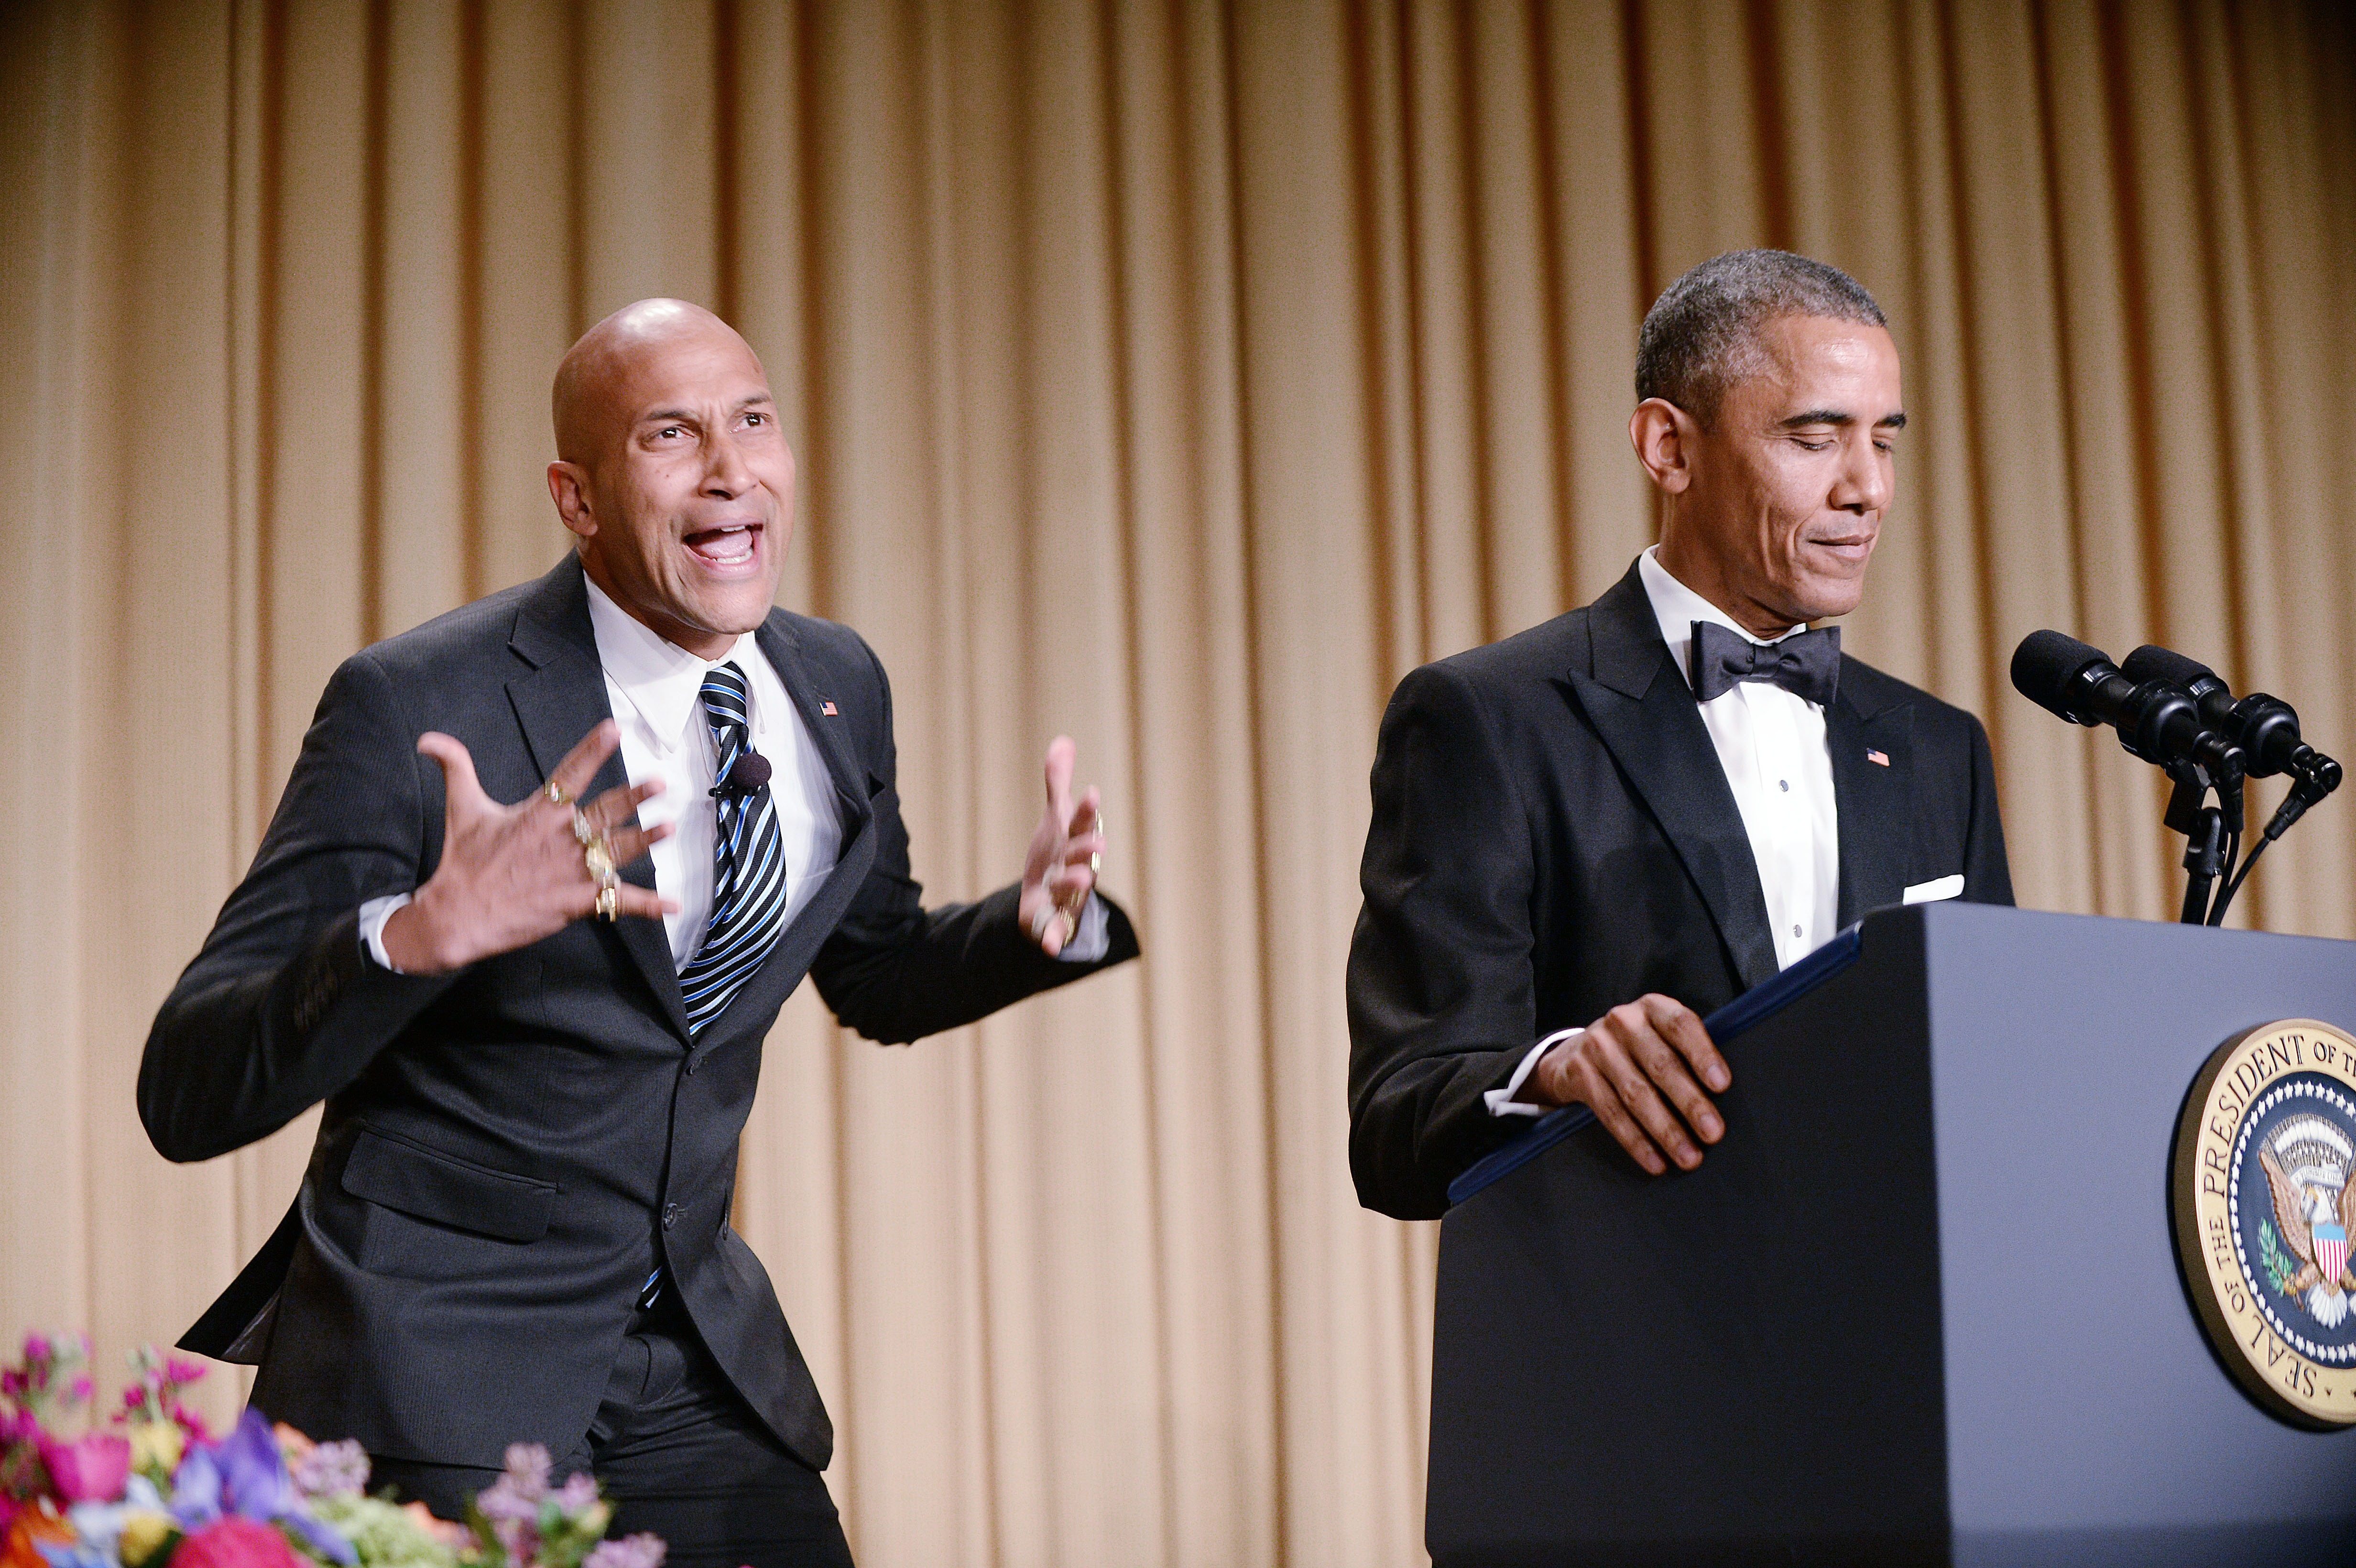 5 Things We Learned From White House Correspondents Dinner